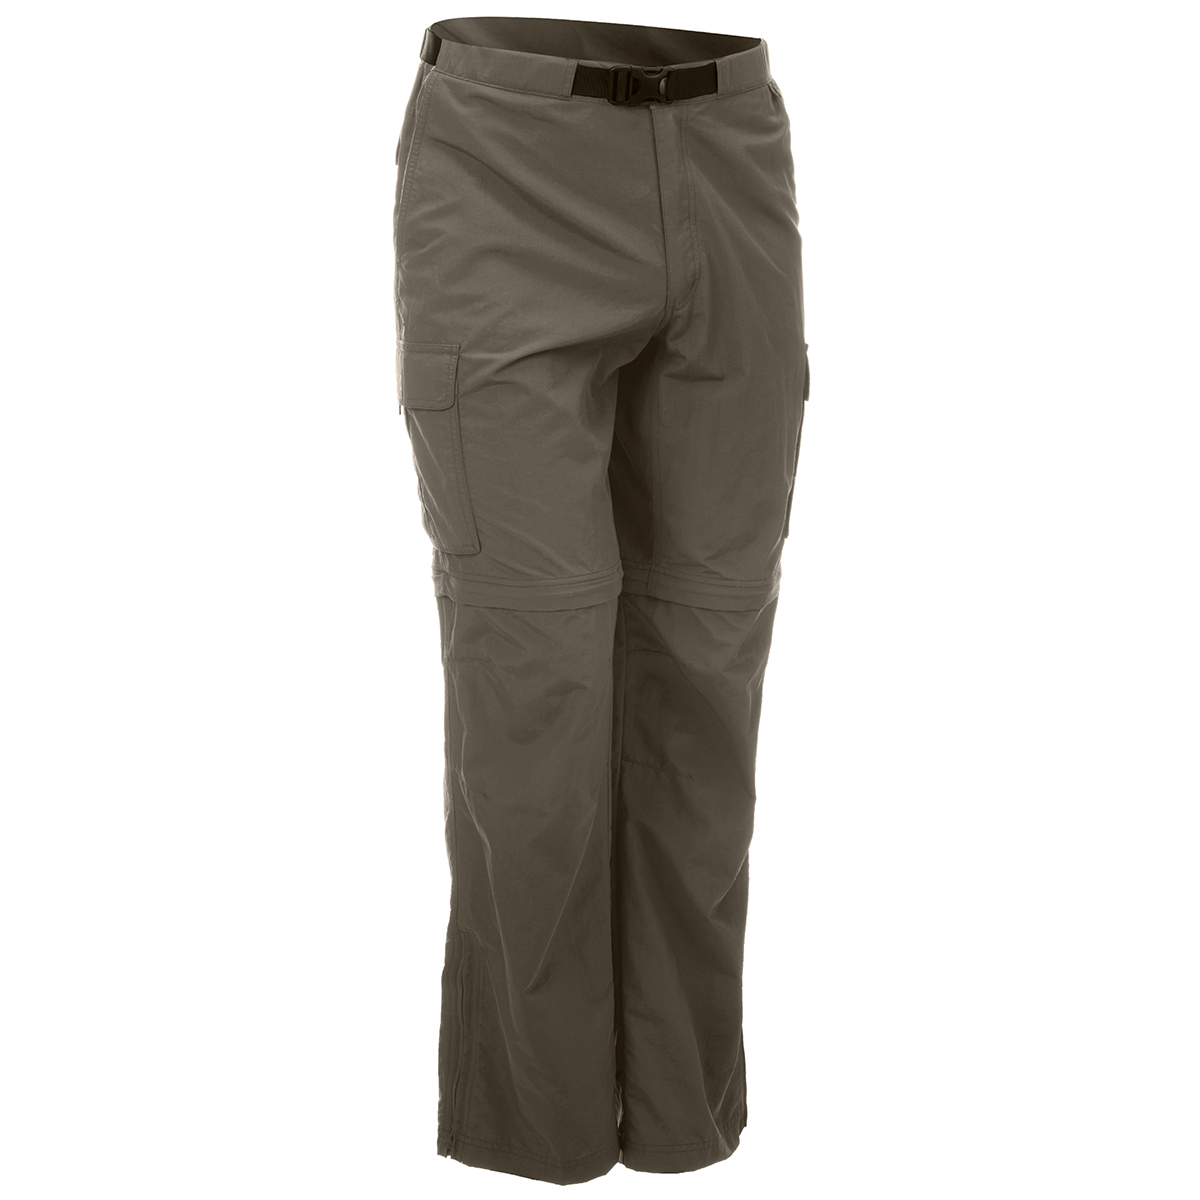 Ems Men's Camp Cargo Zip-Off Pants - Green, 33/32